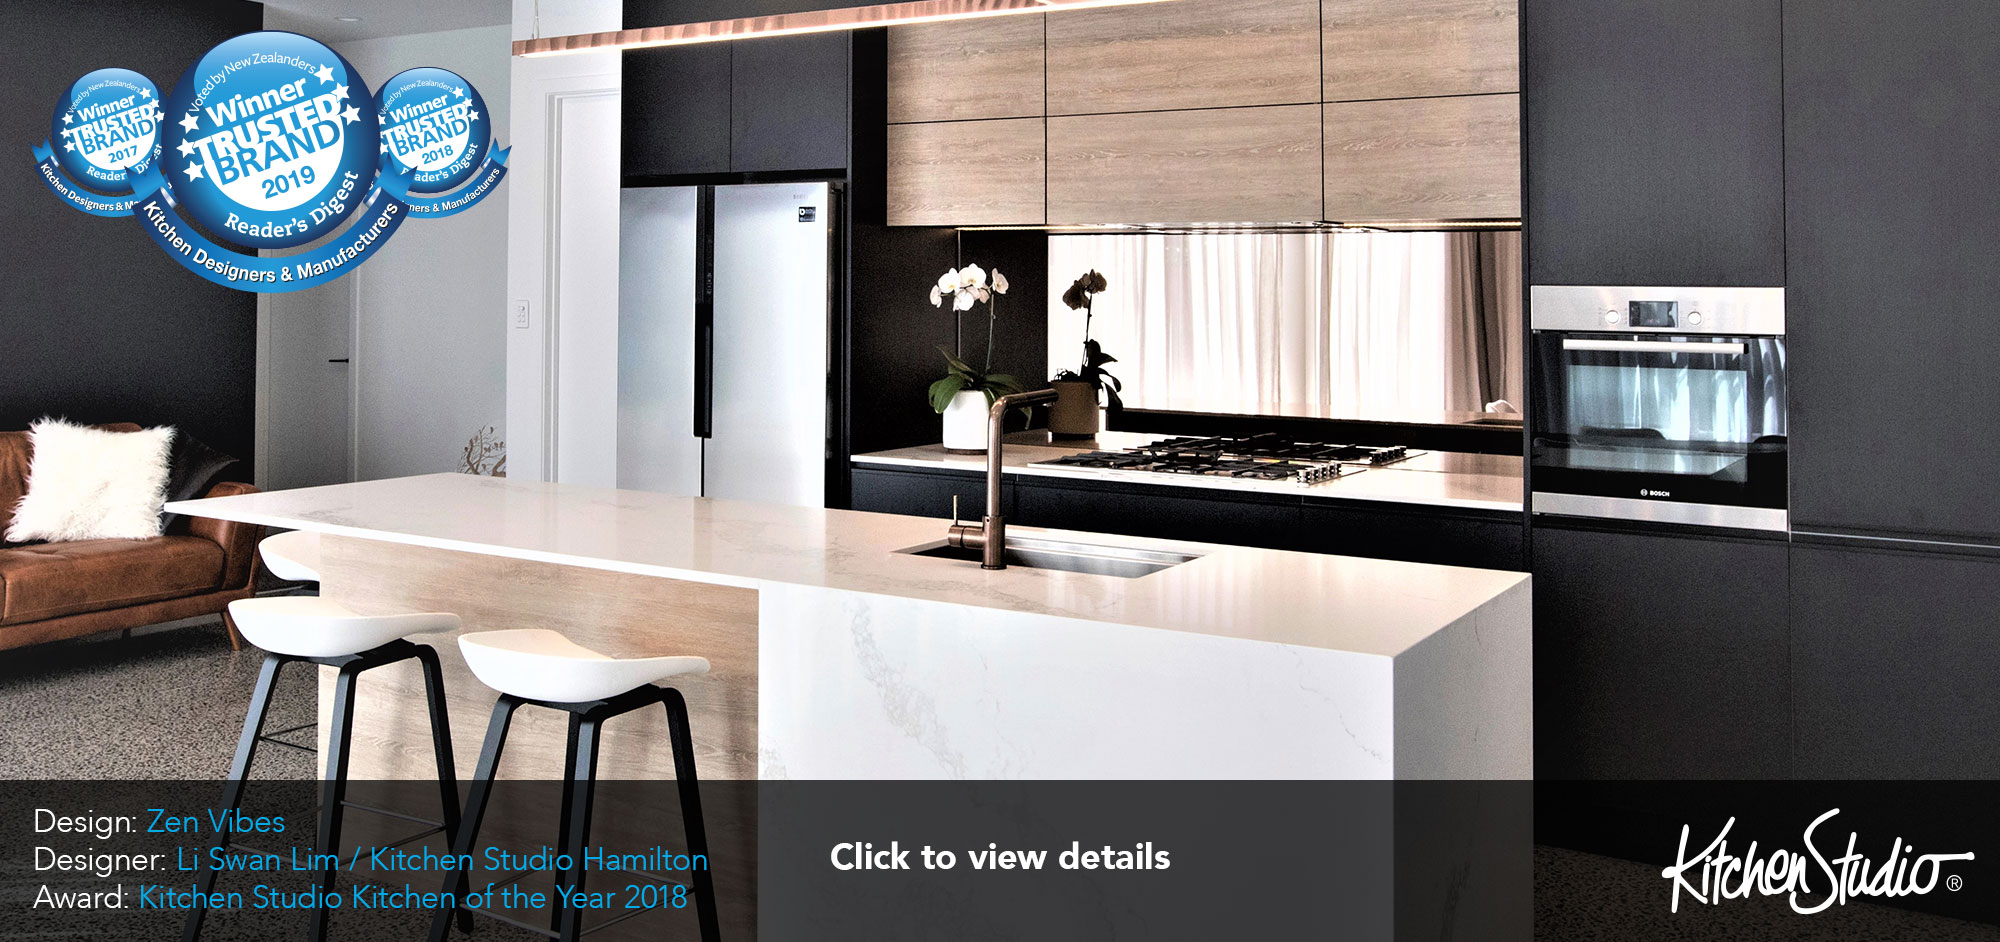 Whatever your style or budget, we can create a stunning kitchen for you